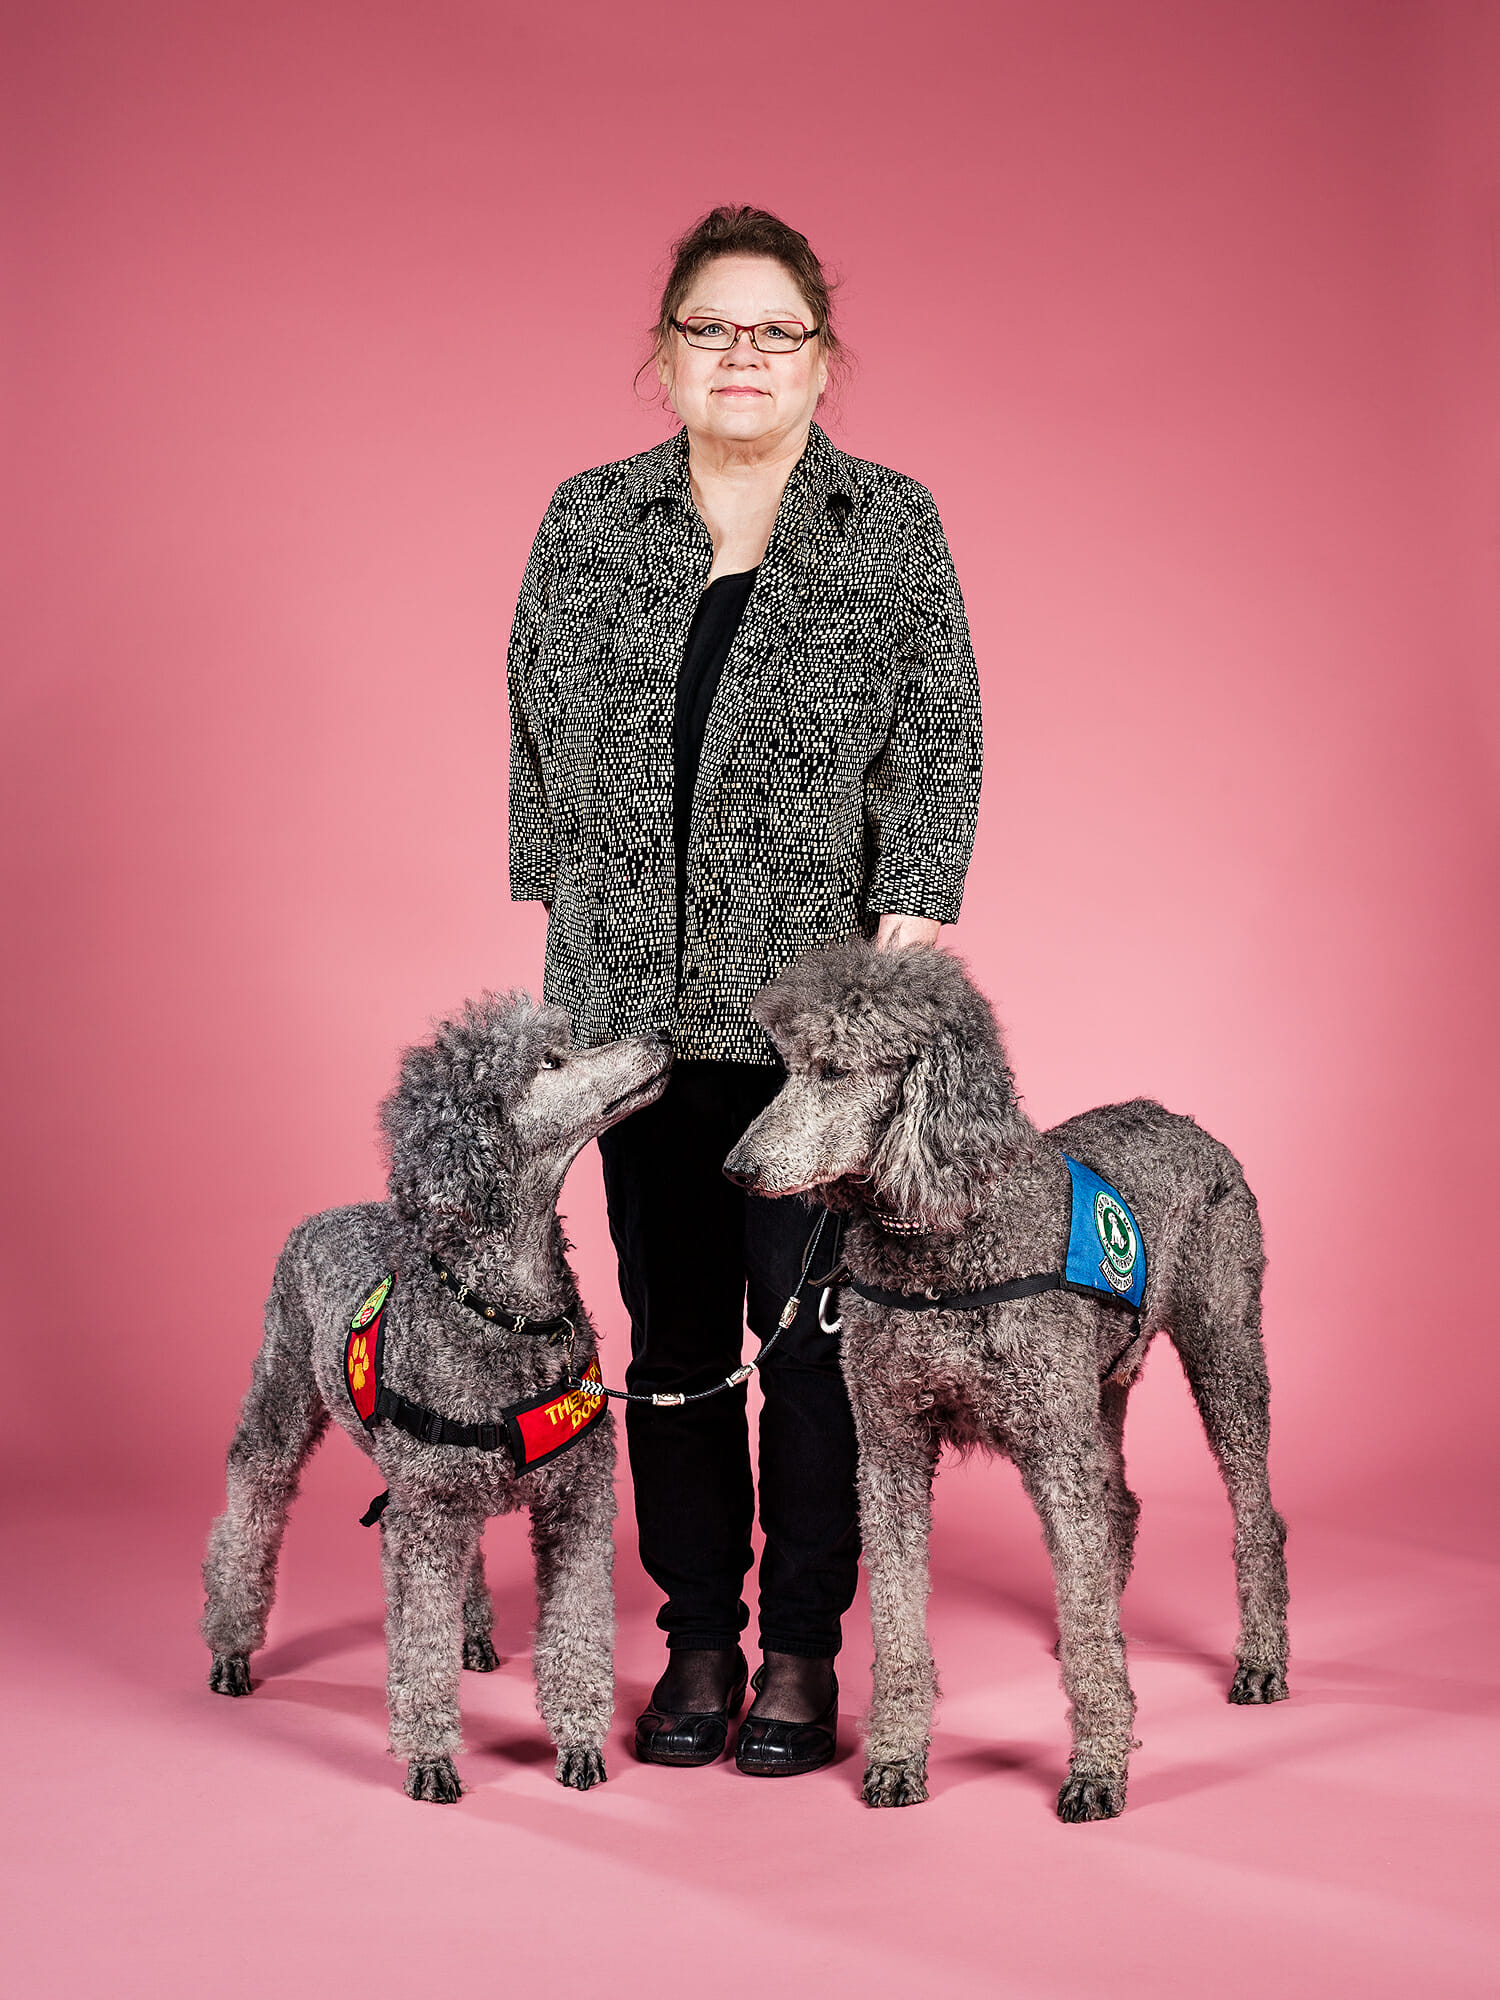 Poodle service dogs Titan and Jodie with owner Laura